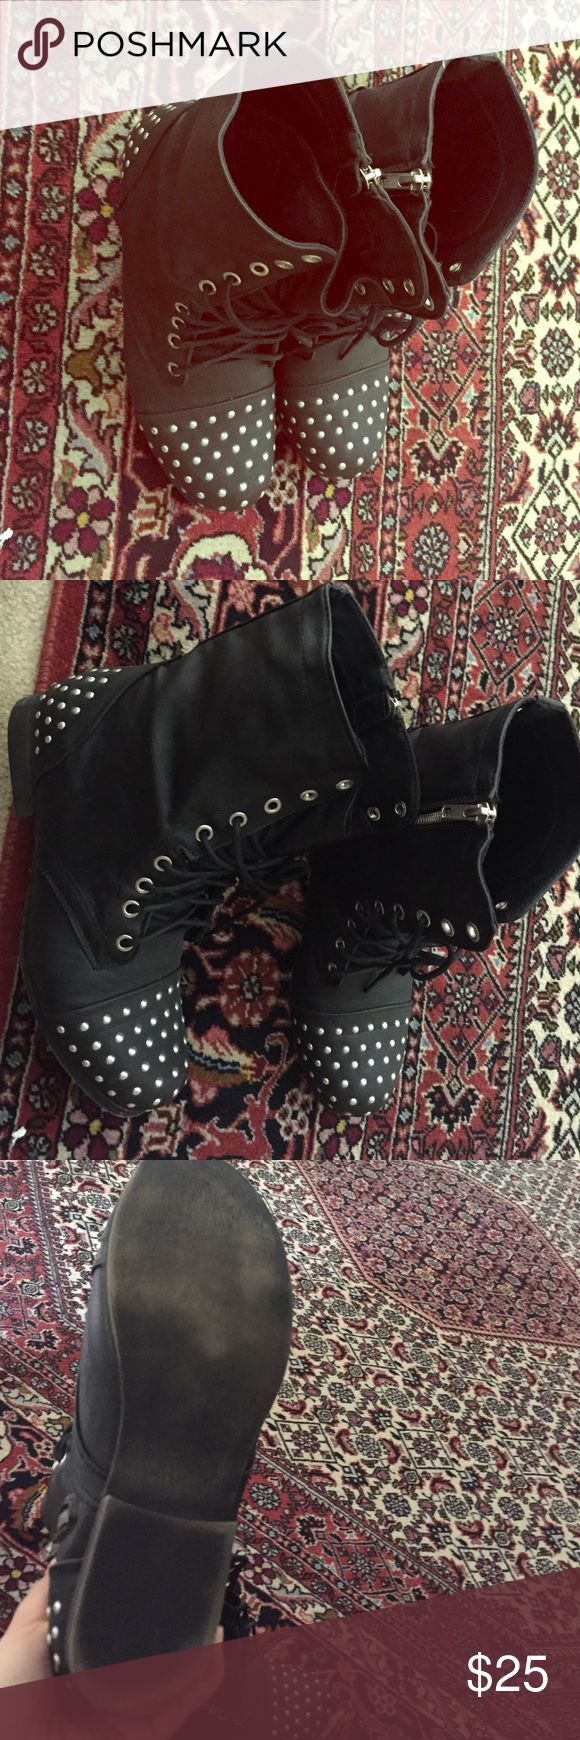 Steve Madden studded combat boots. Worn once Really cute and comfortable studded combat boots. Bought them from Steve Madden. Steve Madden Shoes Lace Up Boots